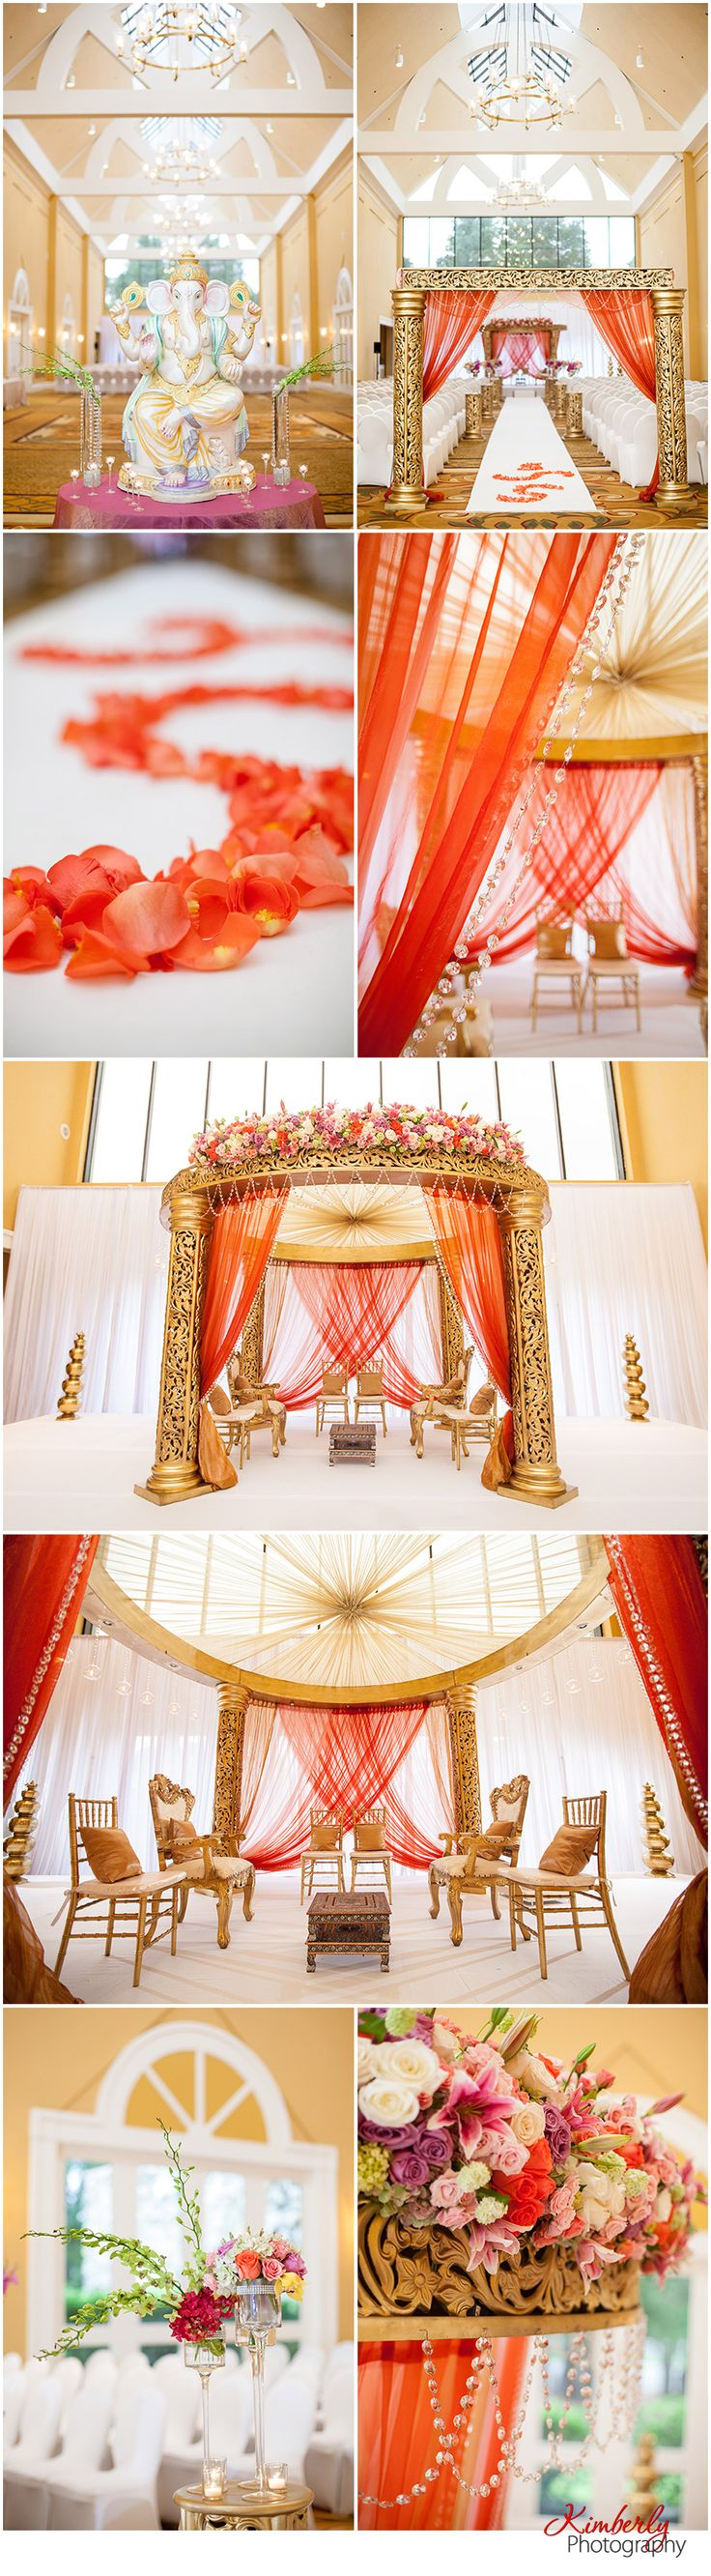 best 10+ indian wedding decorations ideas on pinterest | outdoor